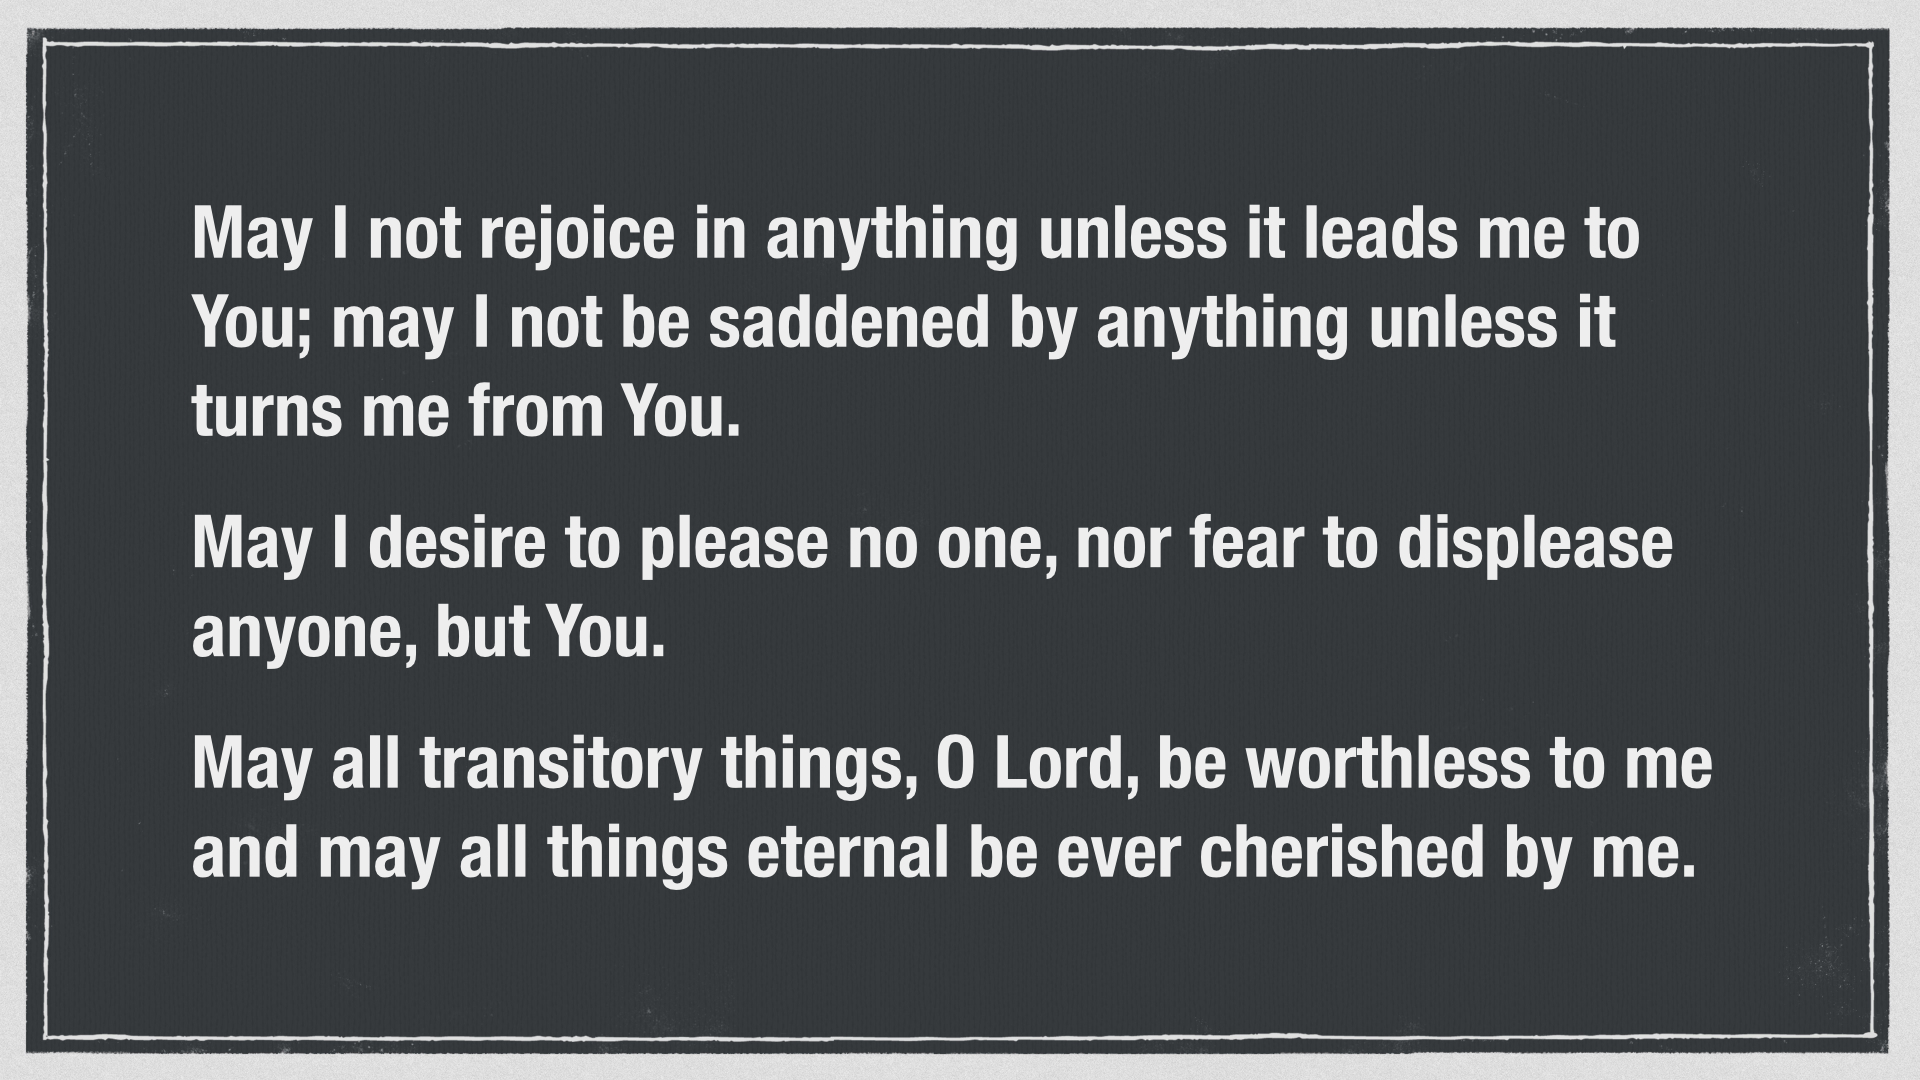 Prayer of St. Thomas Aquinas for ordering life wisely.004.jpg